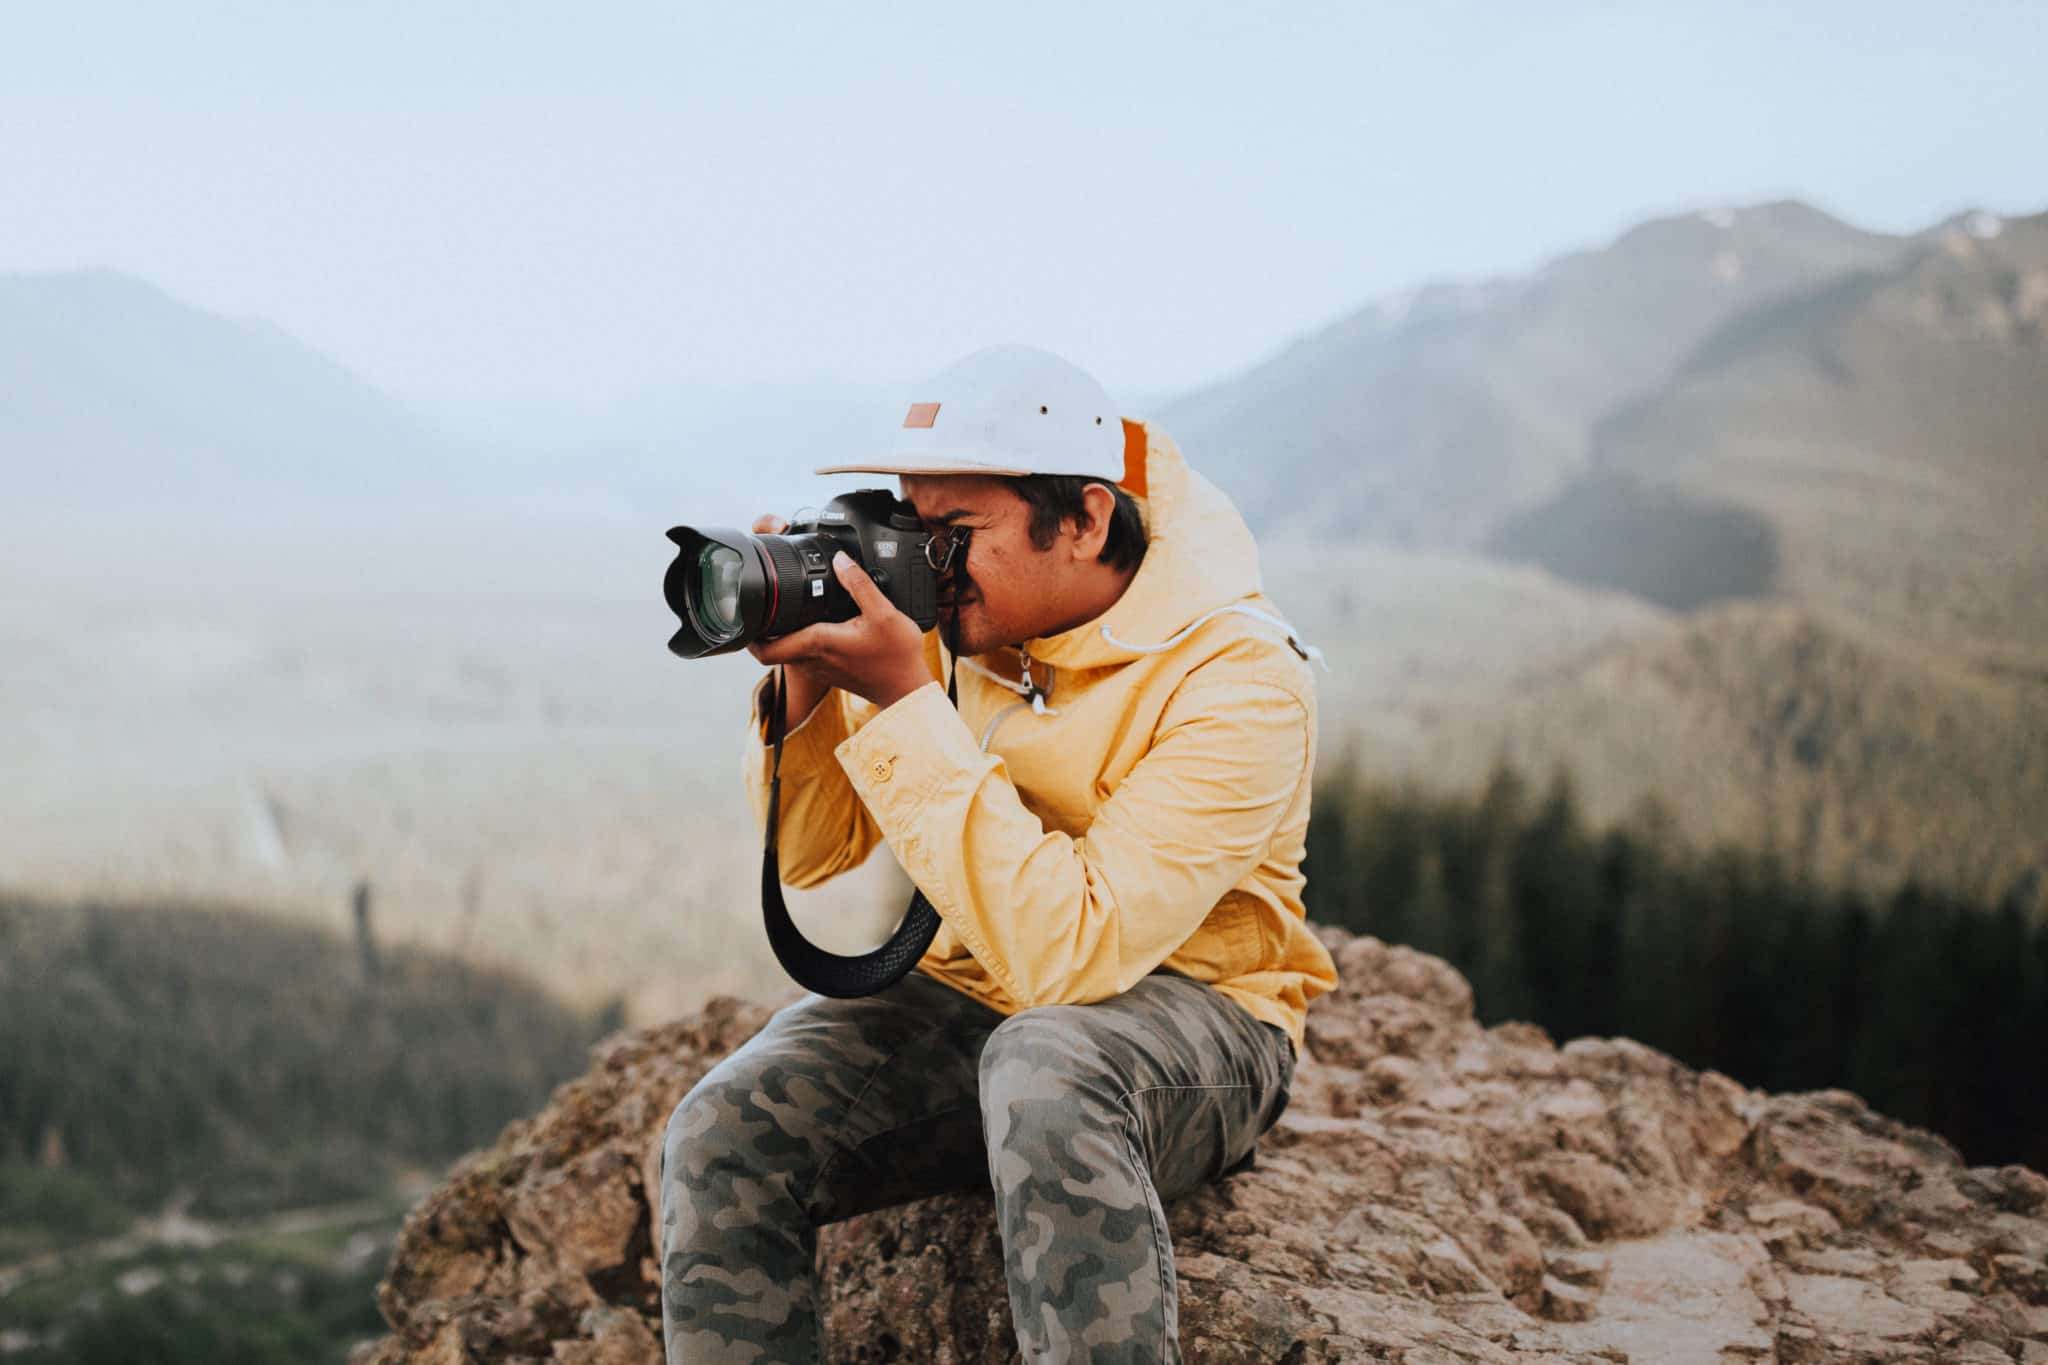 Our Complete Travel Photography Gear List